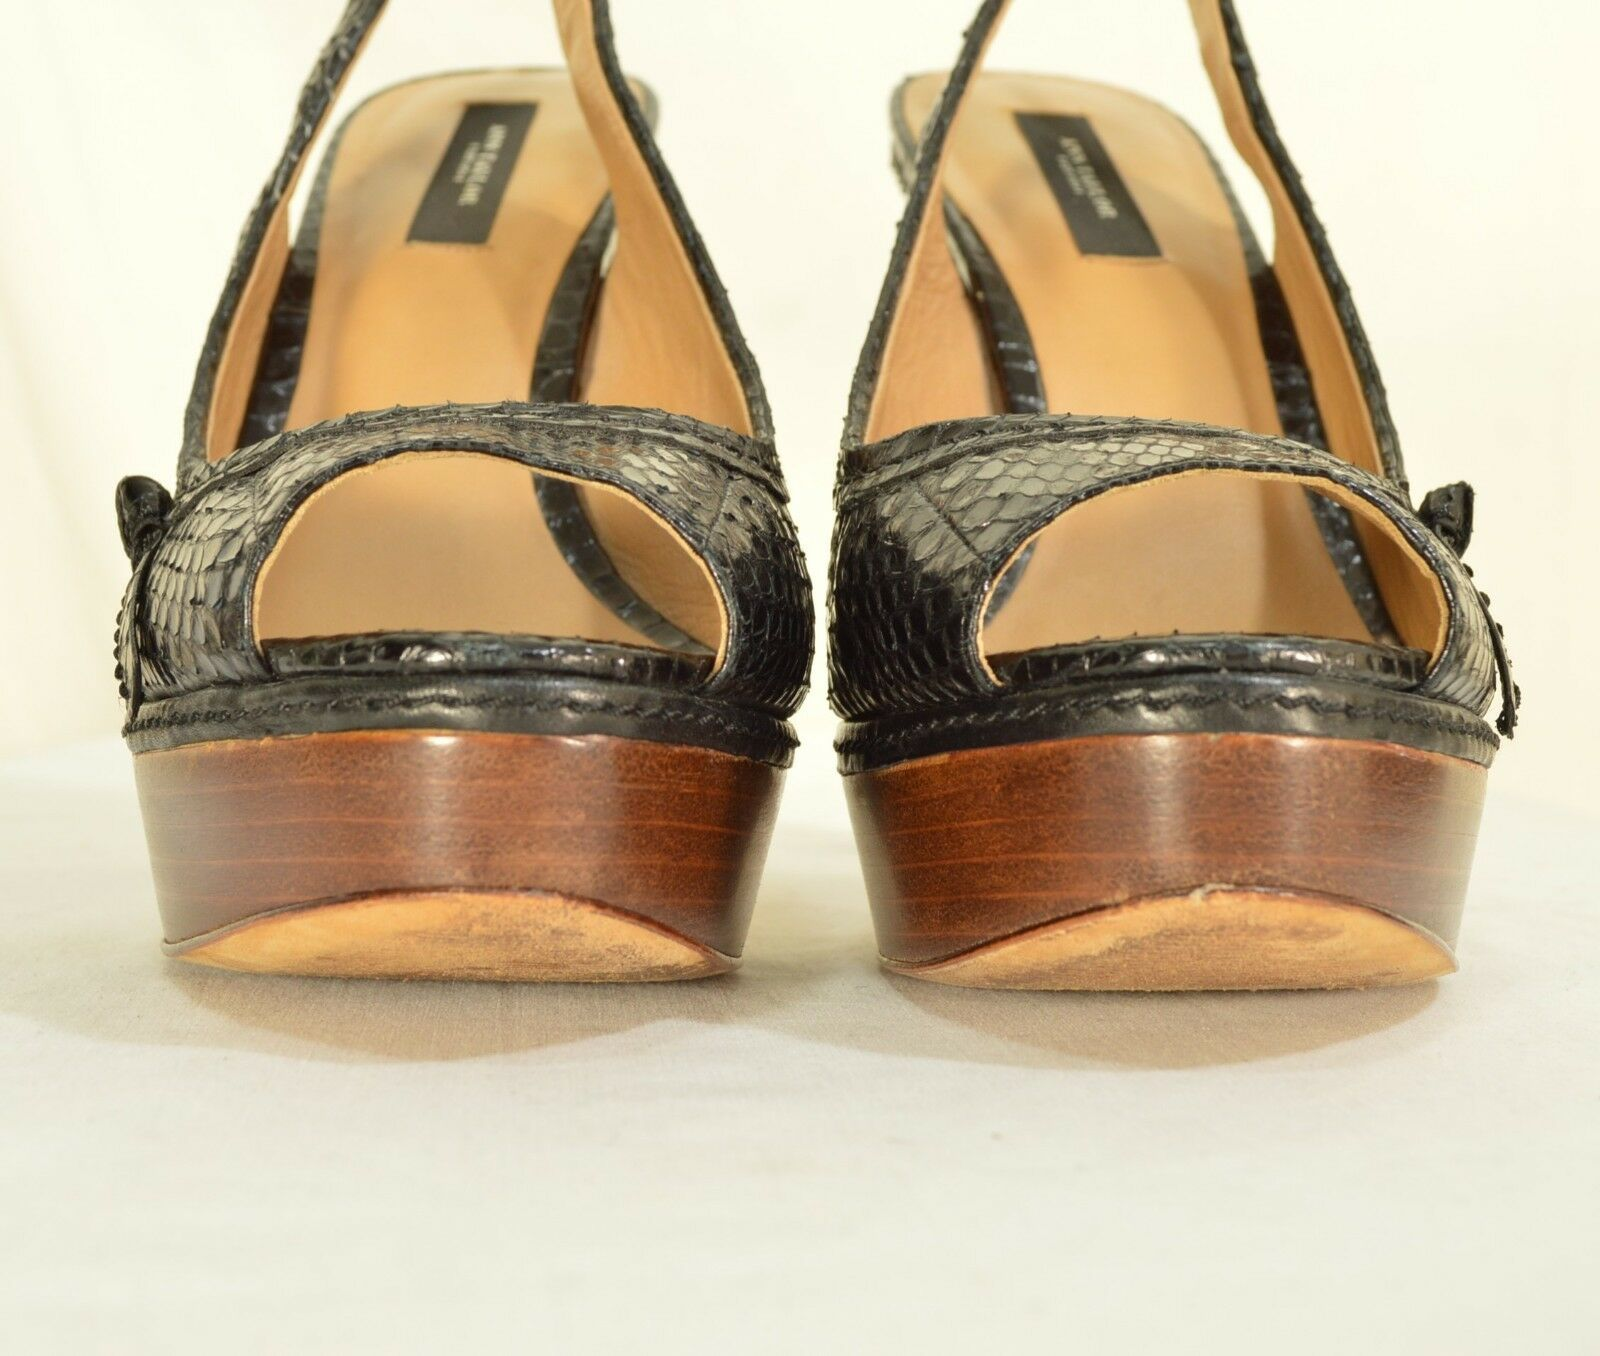 Ann Taylor shoes heels 9M platform black leather snakeskin high chic career image 8